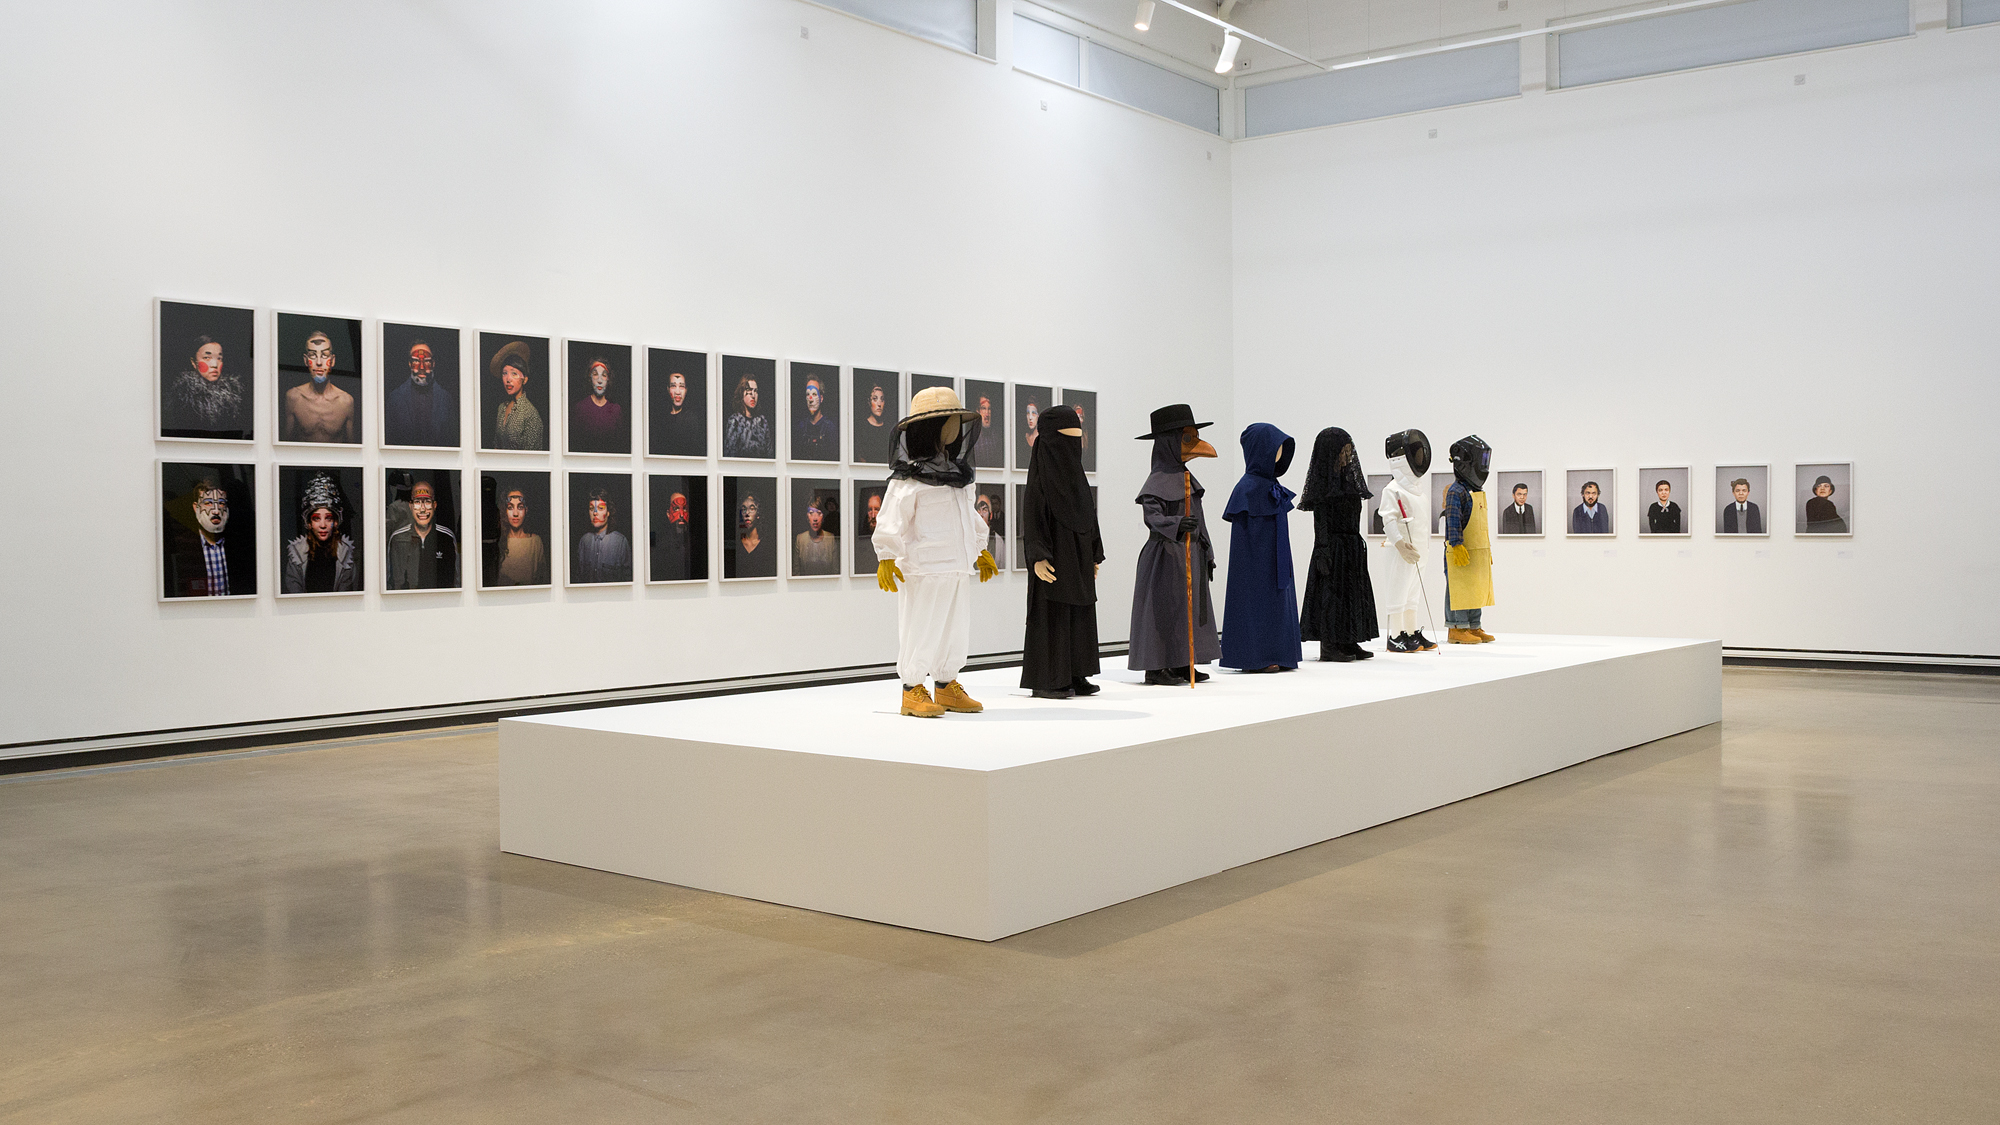 Installation view at the Attenborough Arts Centre in Leicester, United Kingdom, 2017